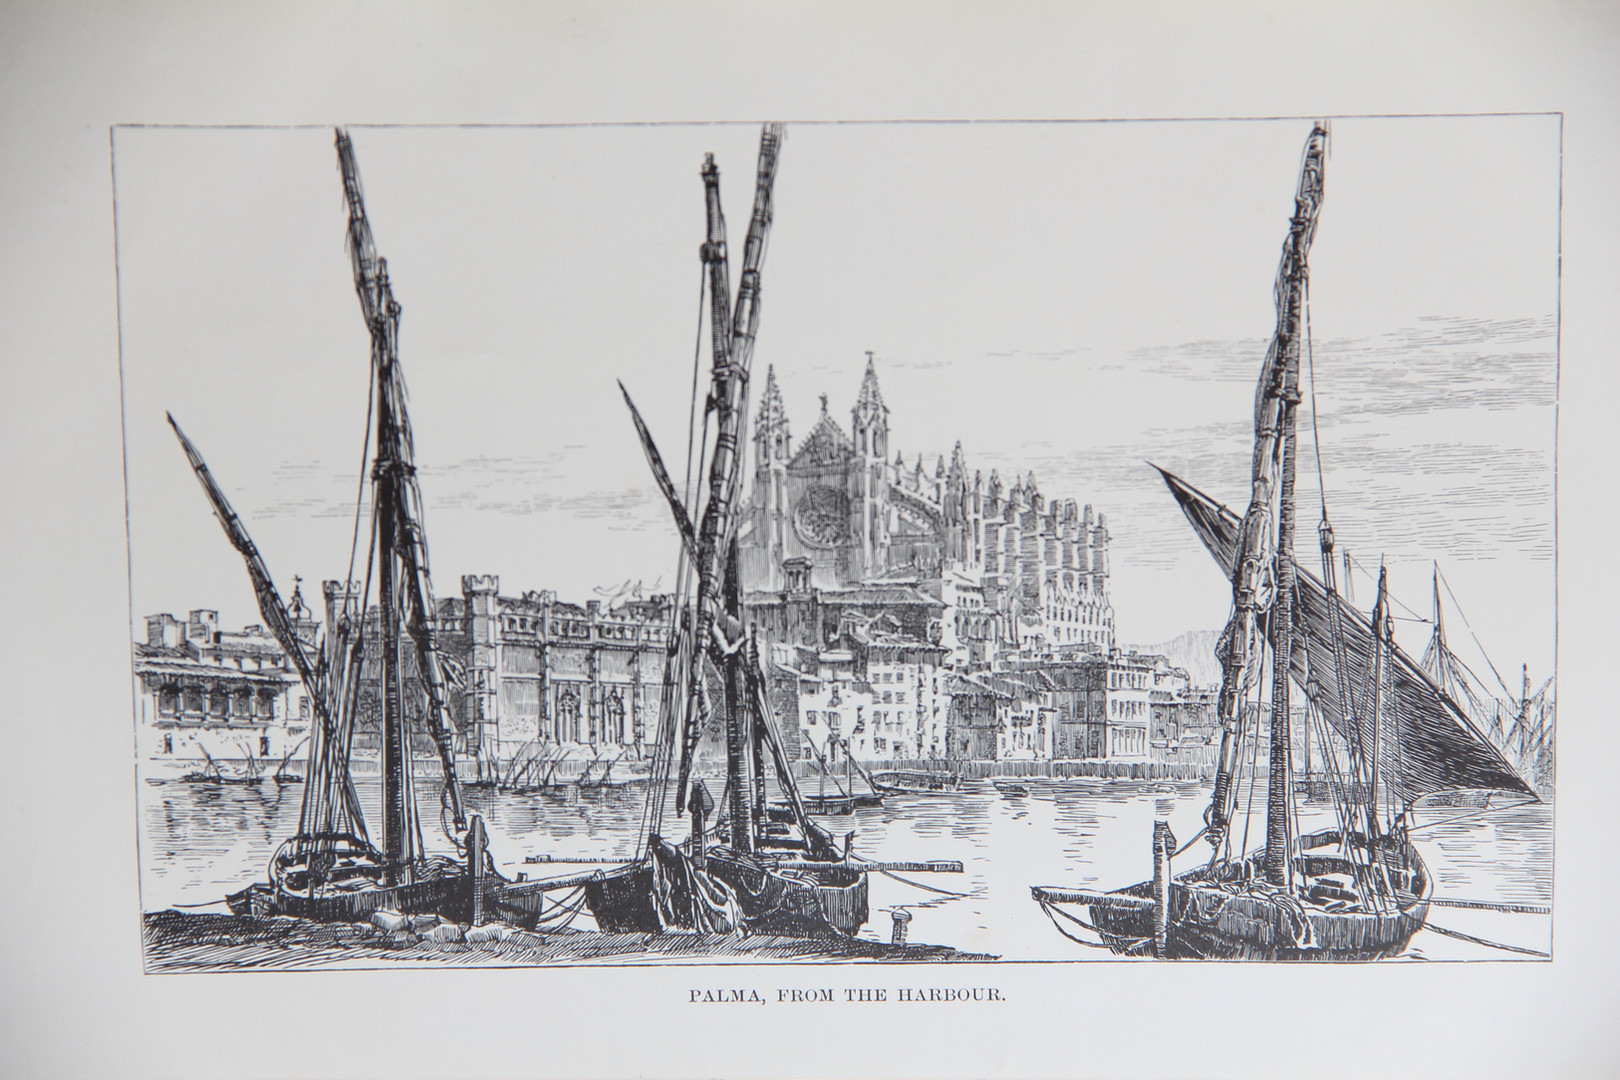 """Print of Palma from the Port according to CW Wood. Included in his book """"Letters from Majorca"""" (1888)."""